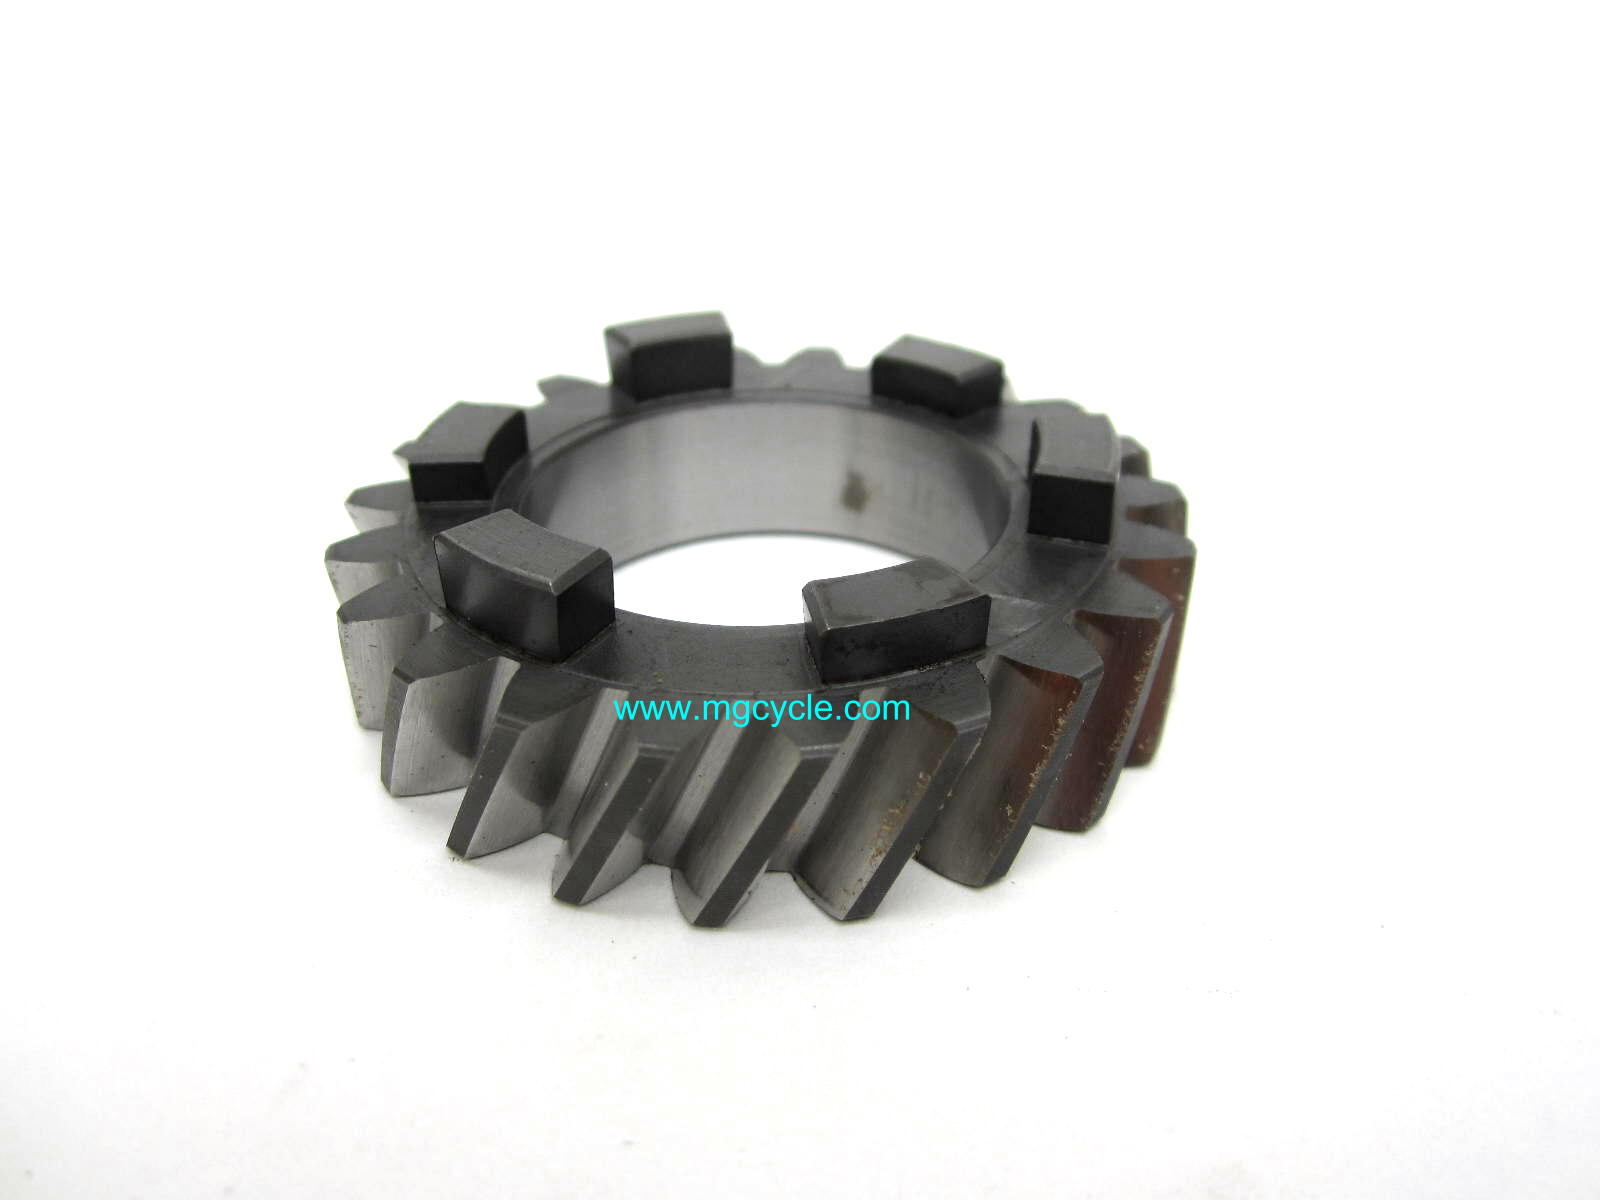 3rd gear 22 tooth pre-2001 big twin 5 speed gearboxes GU14214810